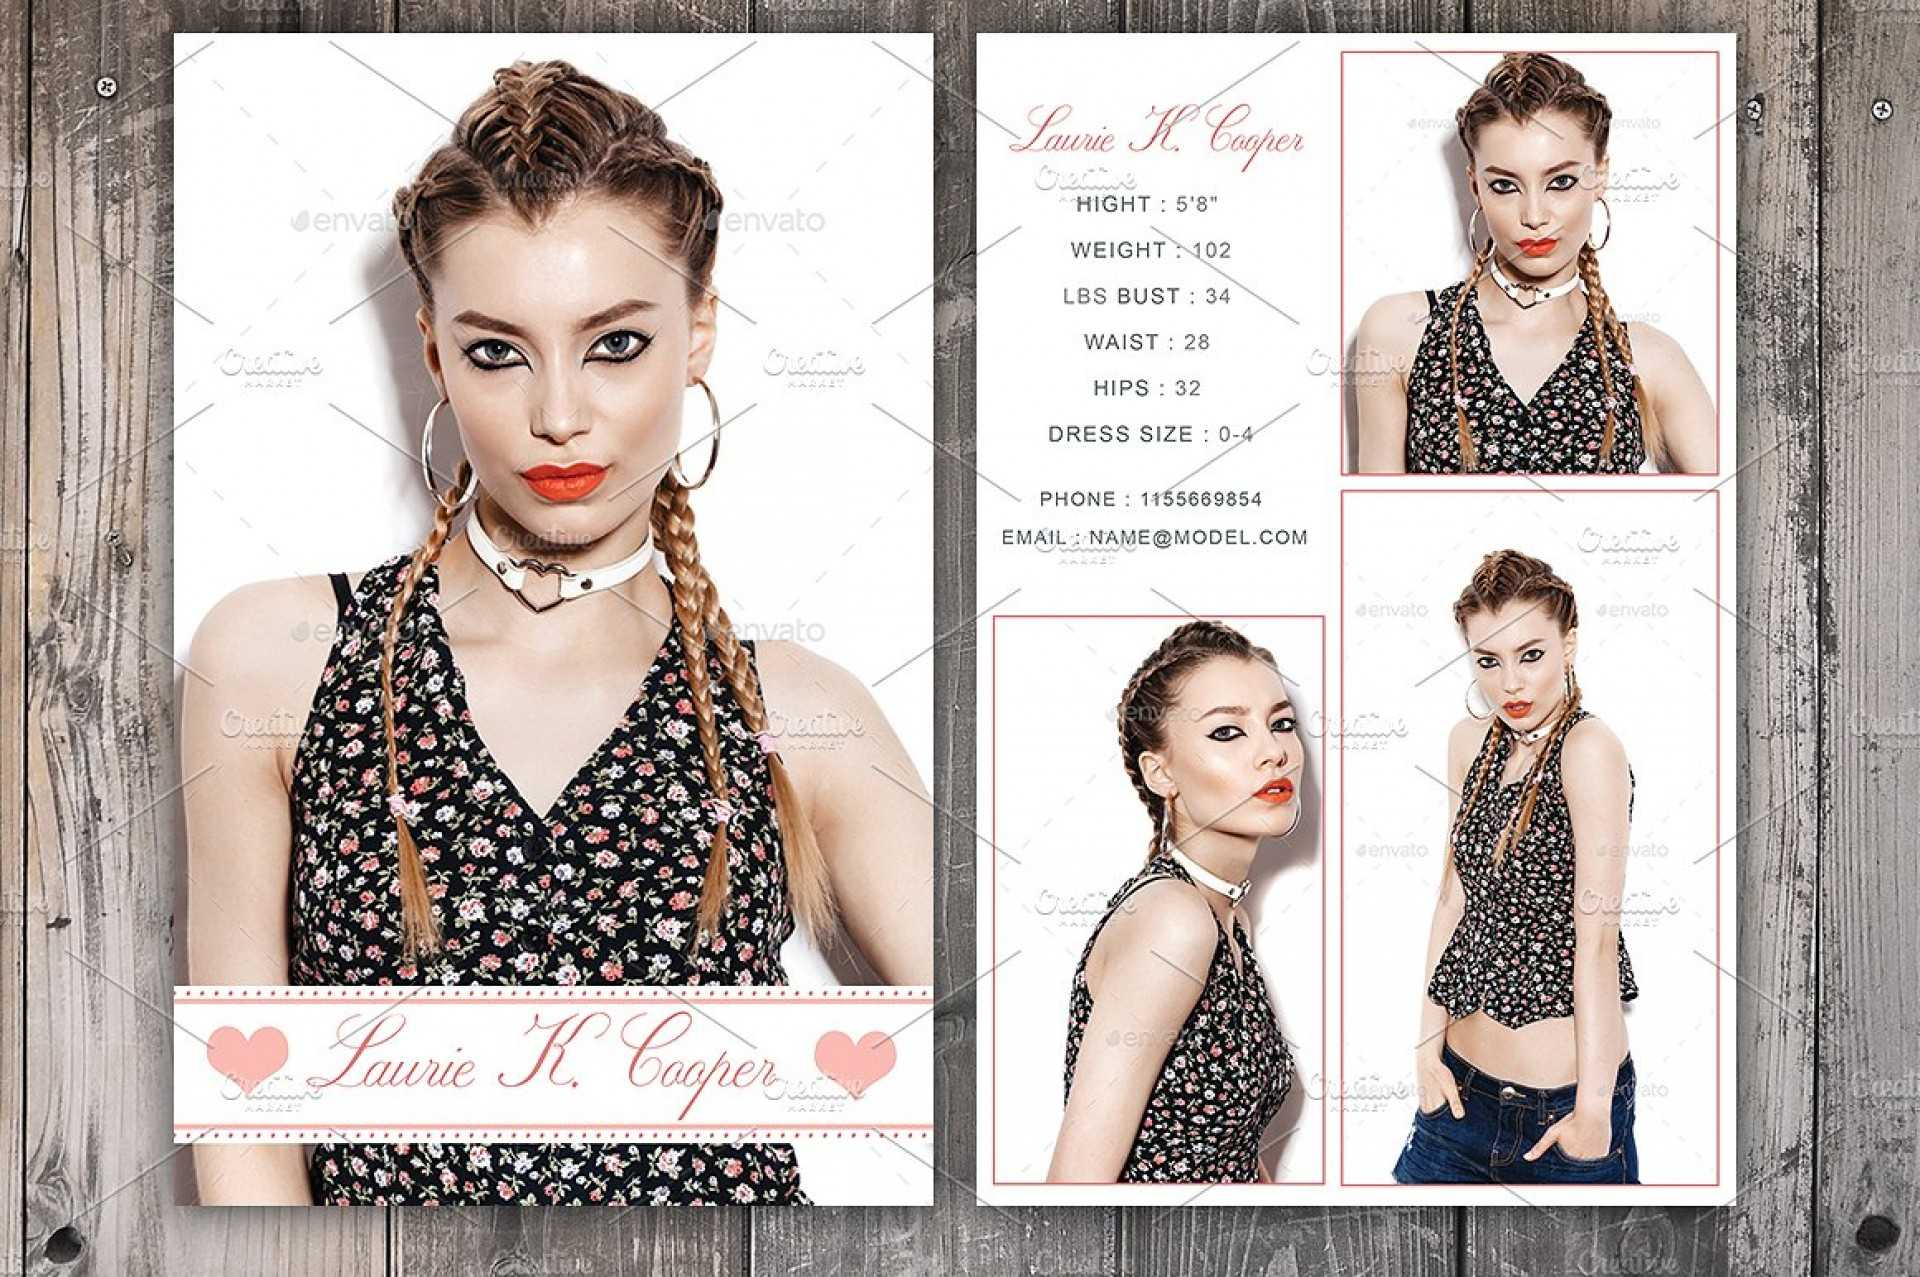 Free Model Comp Card Templates - C Punkt With Regard To Free Comp Card Template